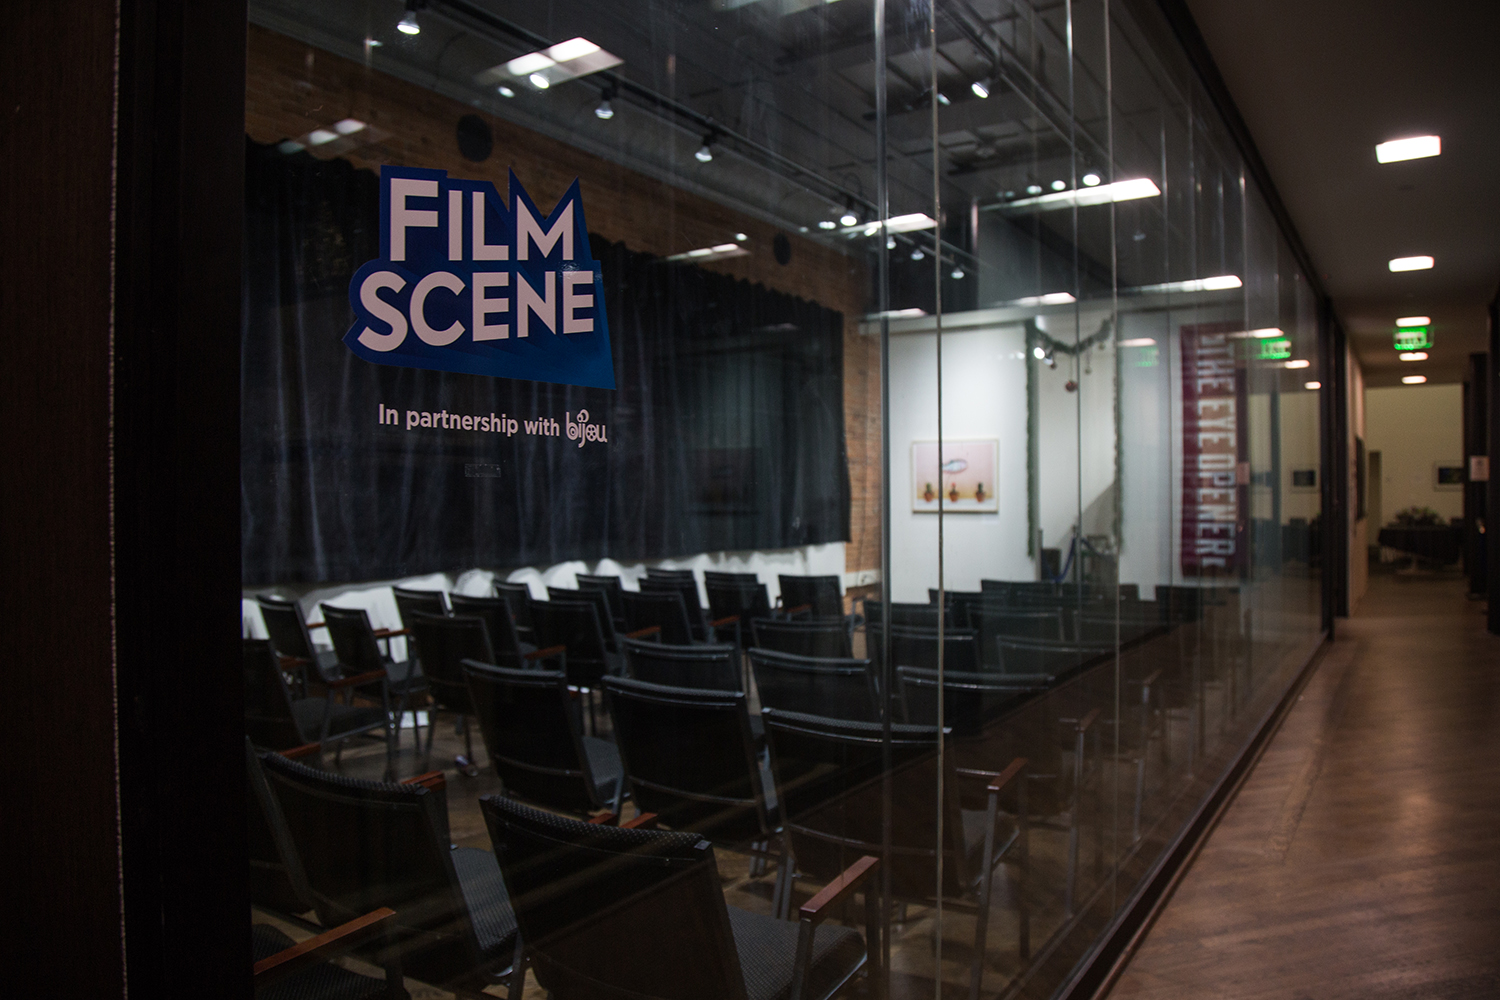 FilmScene's gallery is the proposed spot for an additional 40 seat theater due to delays of the Chauncey Tower development, FilmScene is located at 118 E College St in Iowa City, Iowa.